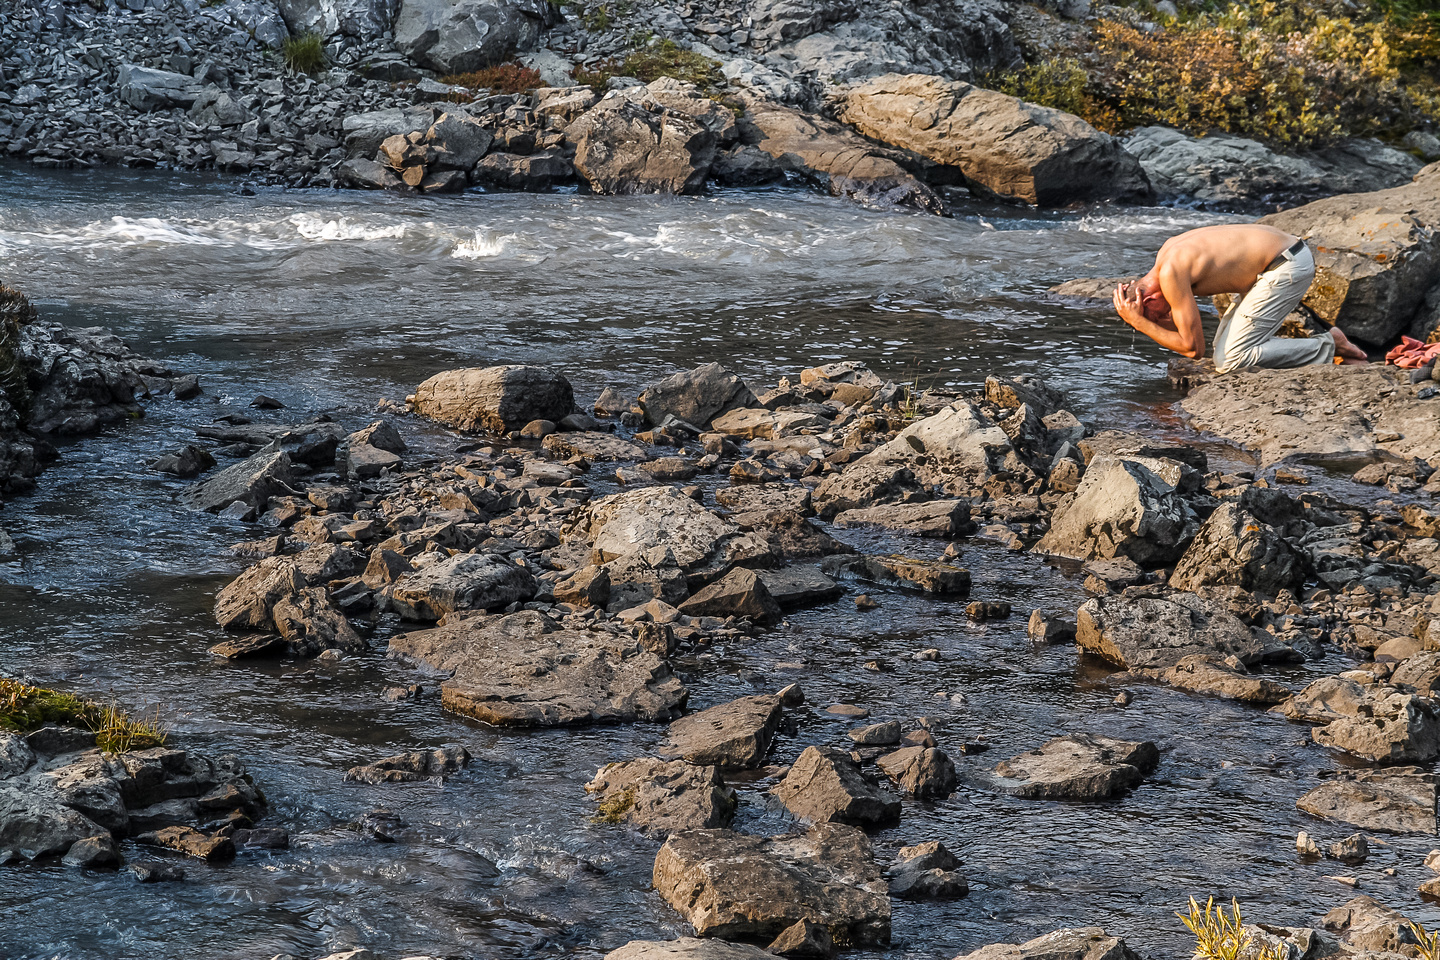 Jon cools off in Aster Creek after a long, hot day of scrambling and hiking.